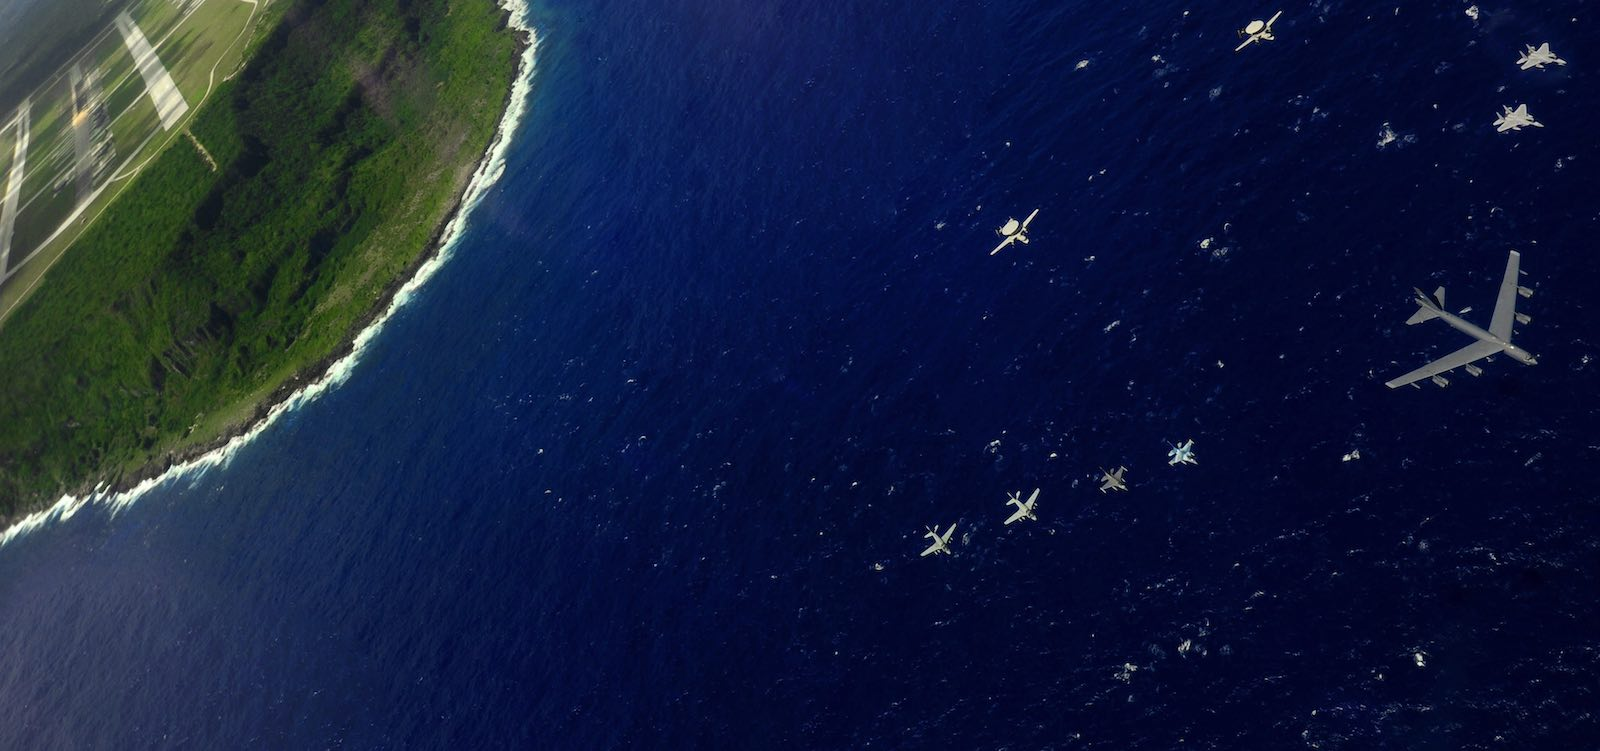 Flying over Andersen Air Force Base, Guam (Photo: US Air Force/Flickr)